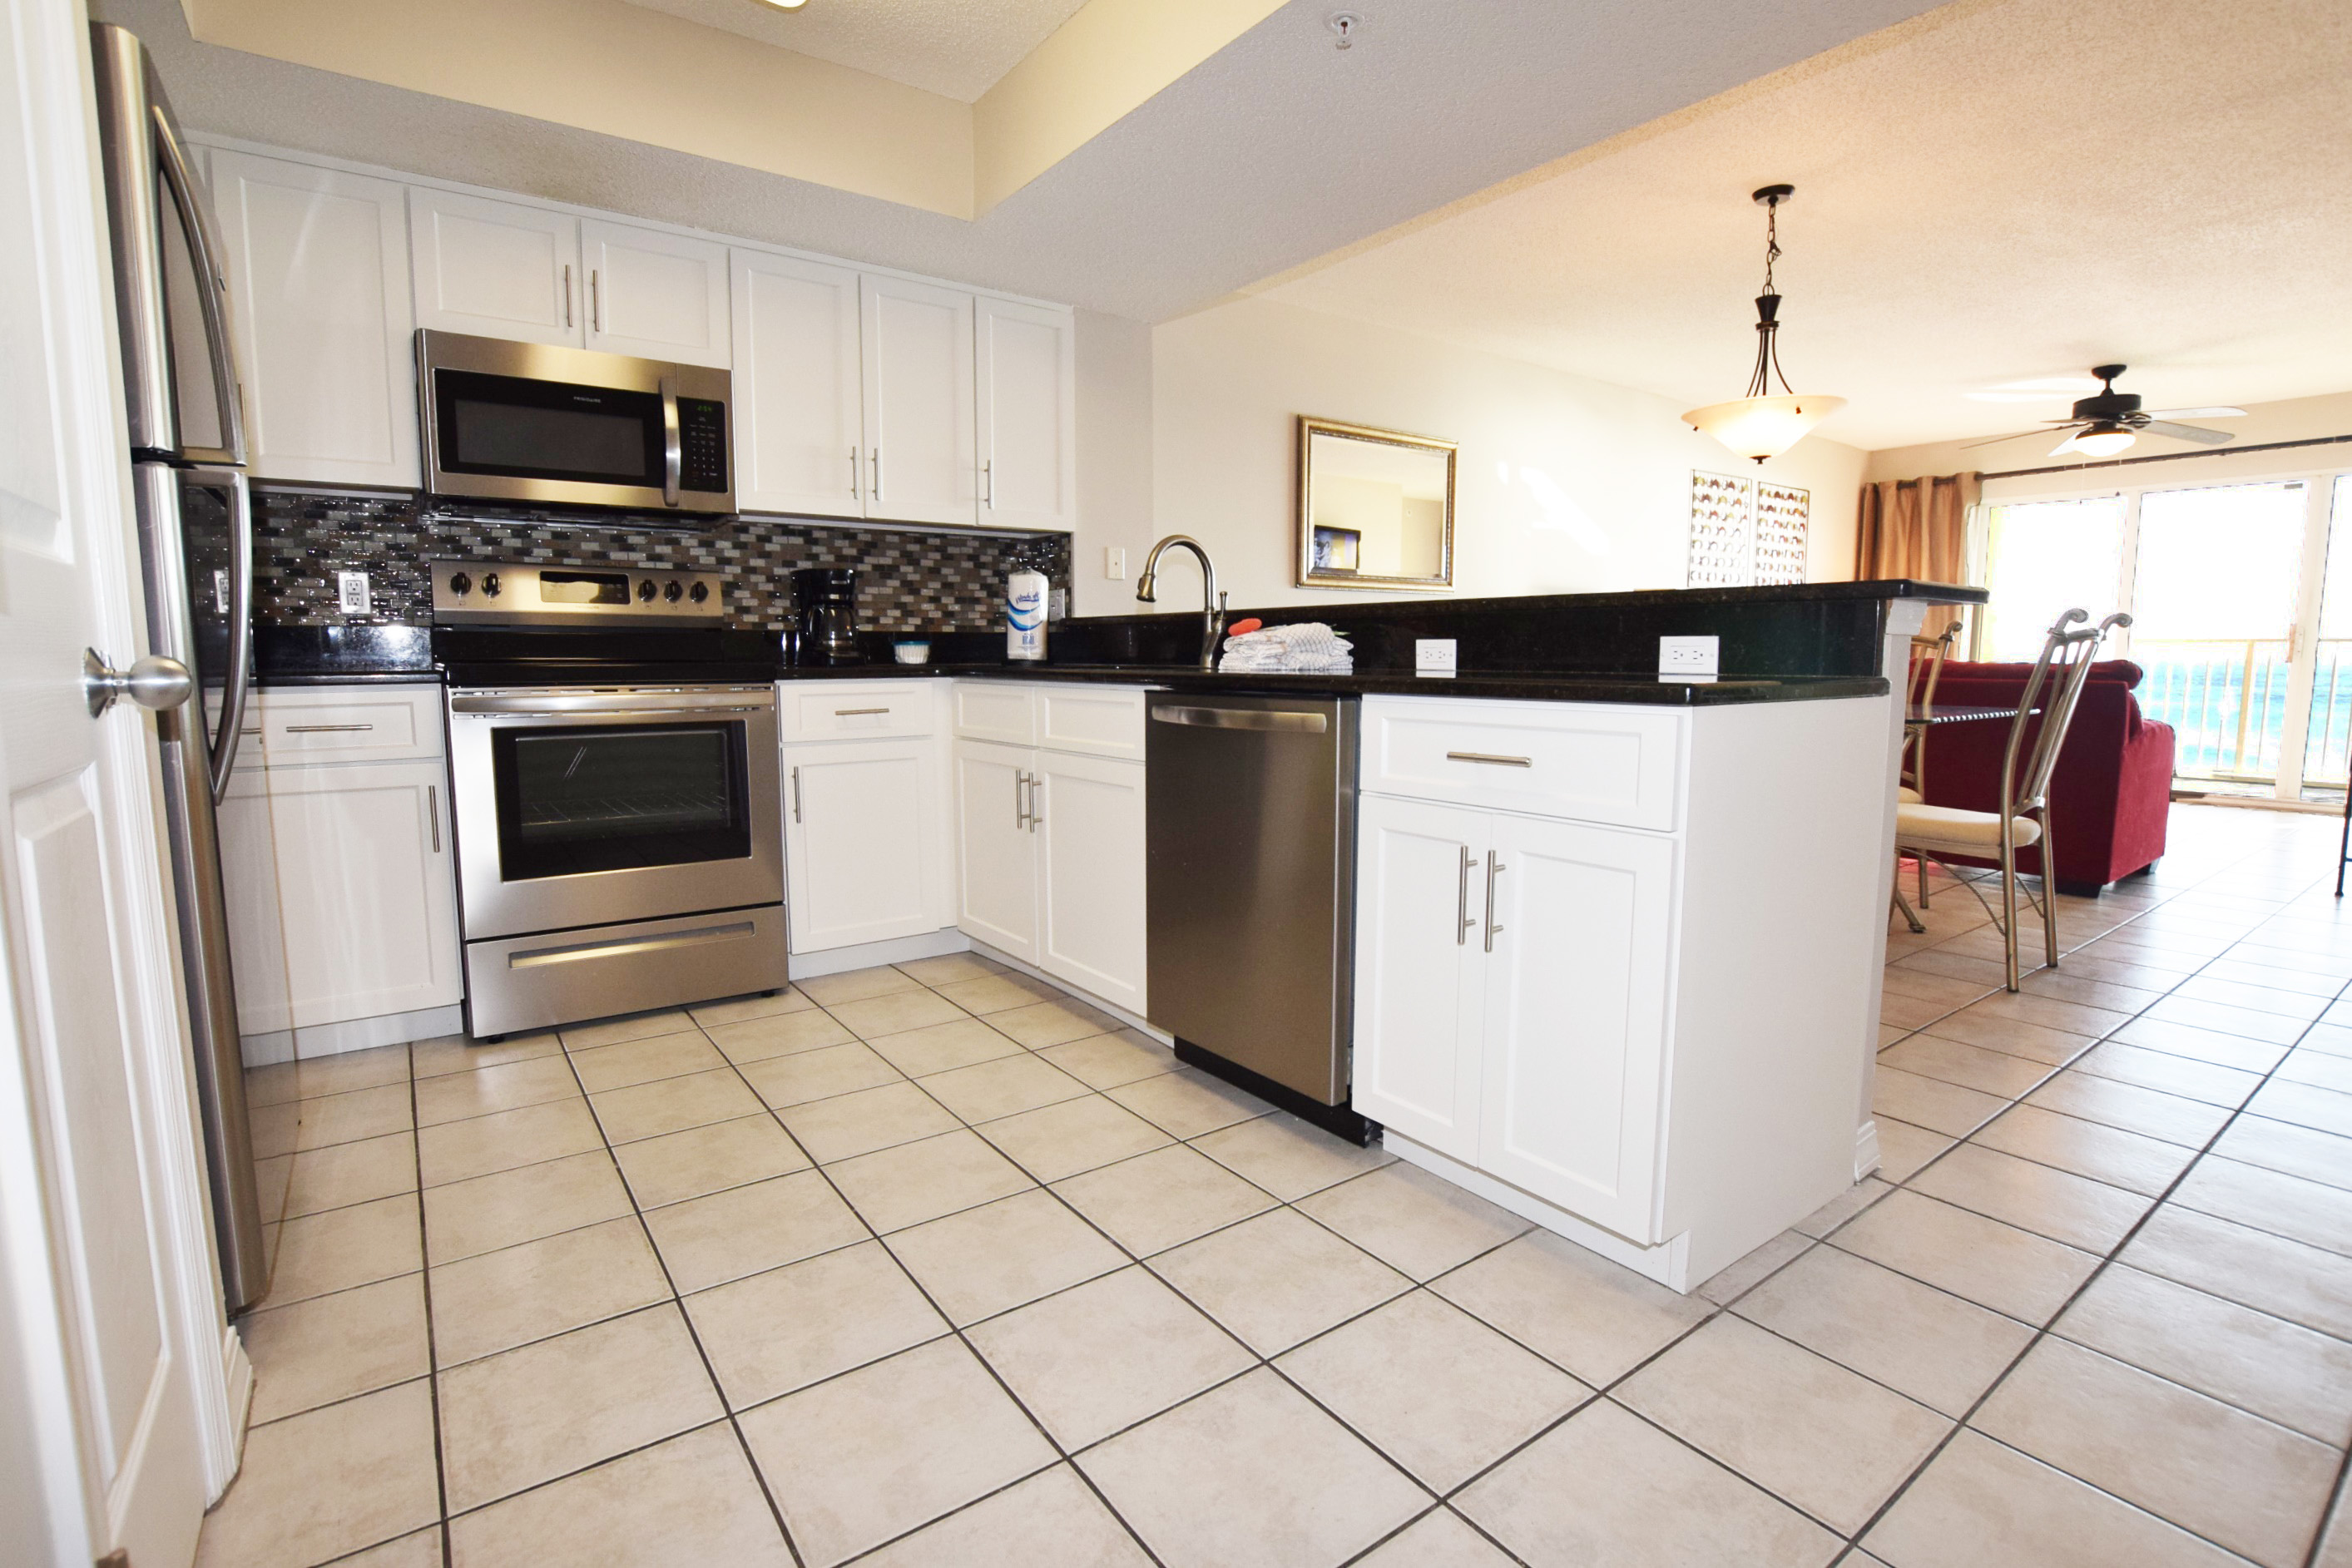 Kitchen with Granite and Stainless upgrades - Gulf Dunes 413 Fort Walton Beach Okaloosa Island Vacation Rentals